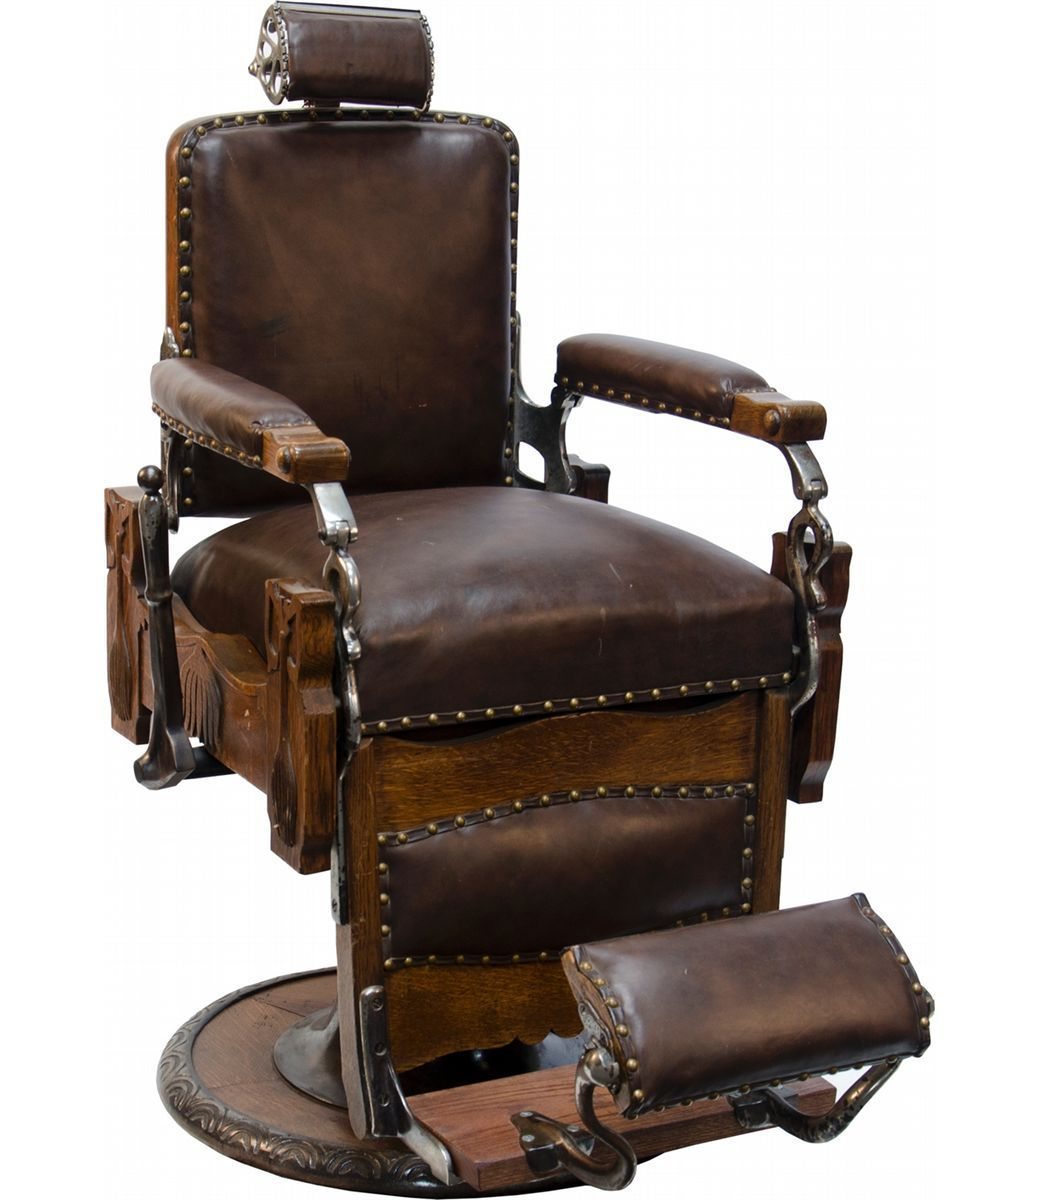 Barber Shop Chairs For Sale Barber Shop Chairs Barber Chair Barber Chair For Sale